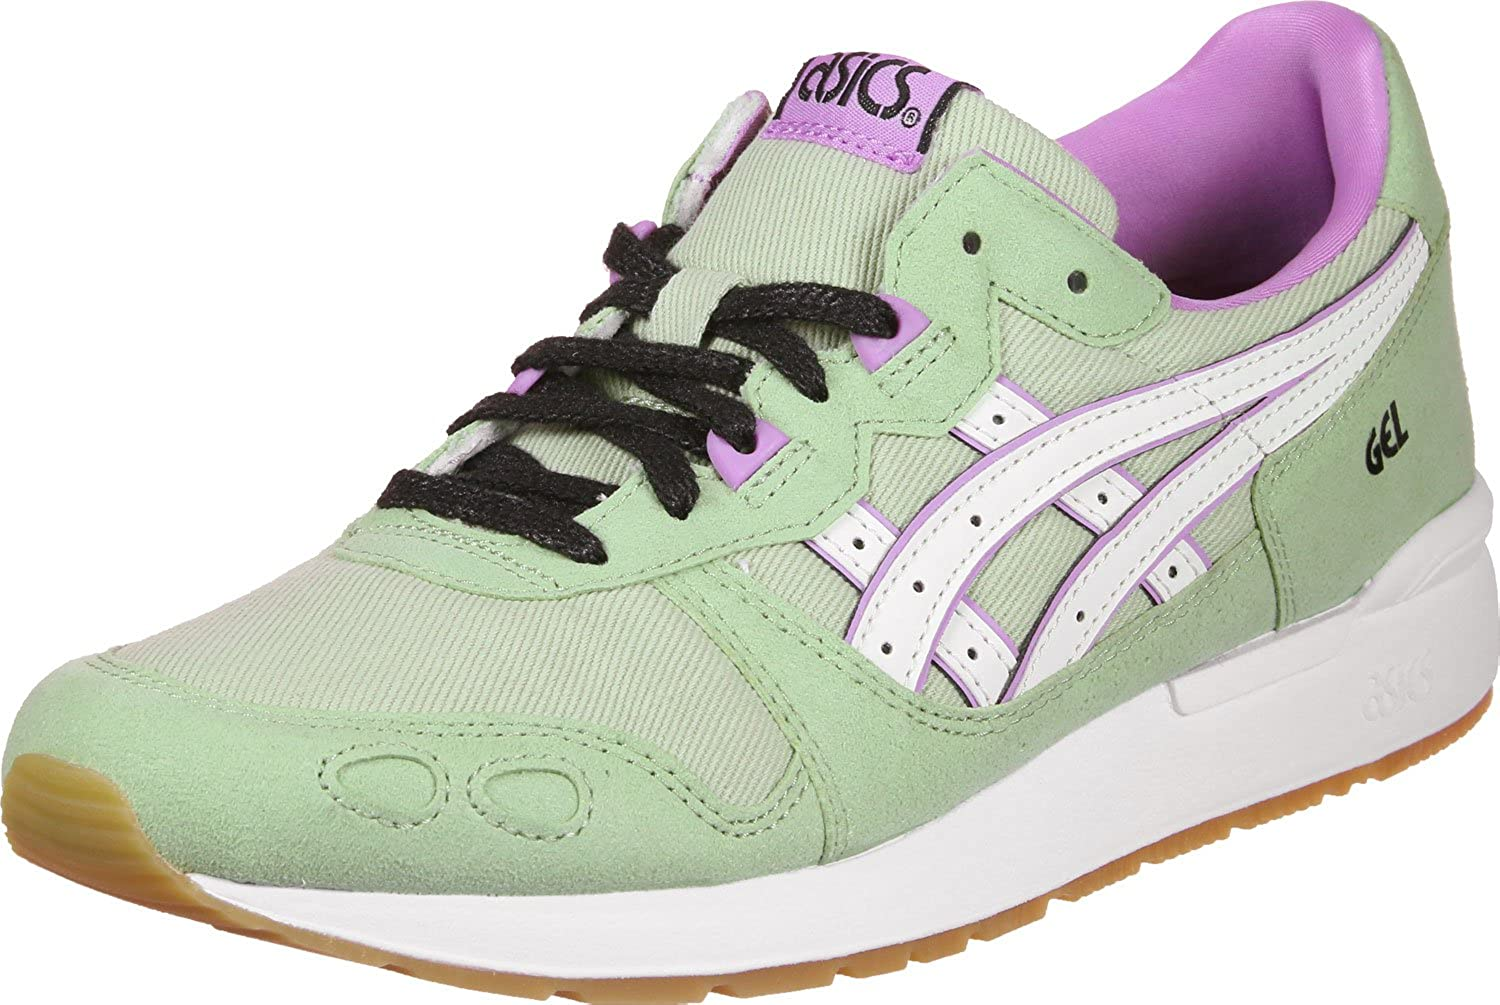 check out 8d57a 35351 ASICS Gel Lyte GS Disney Pack Dopey Lint/Cream Sneakers Femme